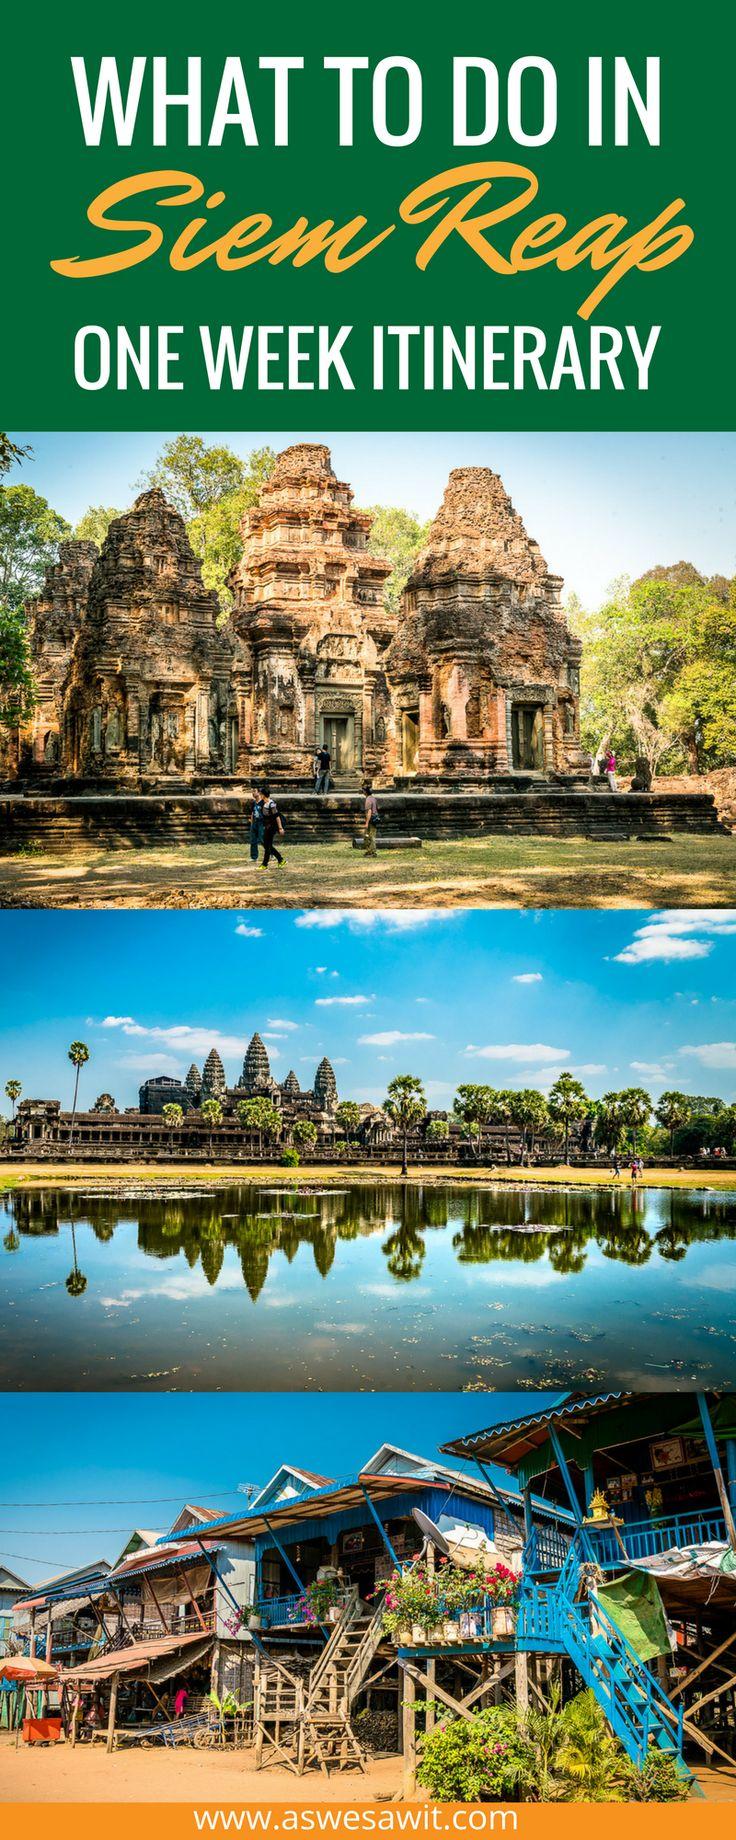 What to do for a week in Siem Reap, Cambodia - Angkor Wat and beyond. Most tourists are in Siem Reap for only a few days.They'll visit Angkor Wat and a few other sights, then head off to Phnom Penh. We decided to spend a whole week in the area. Click through to see our one week itinerary for Siem Reap.   As We Saw It #angkorwat #cambodia #travelitinerary #siemreap